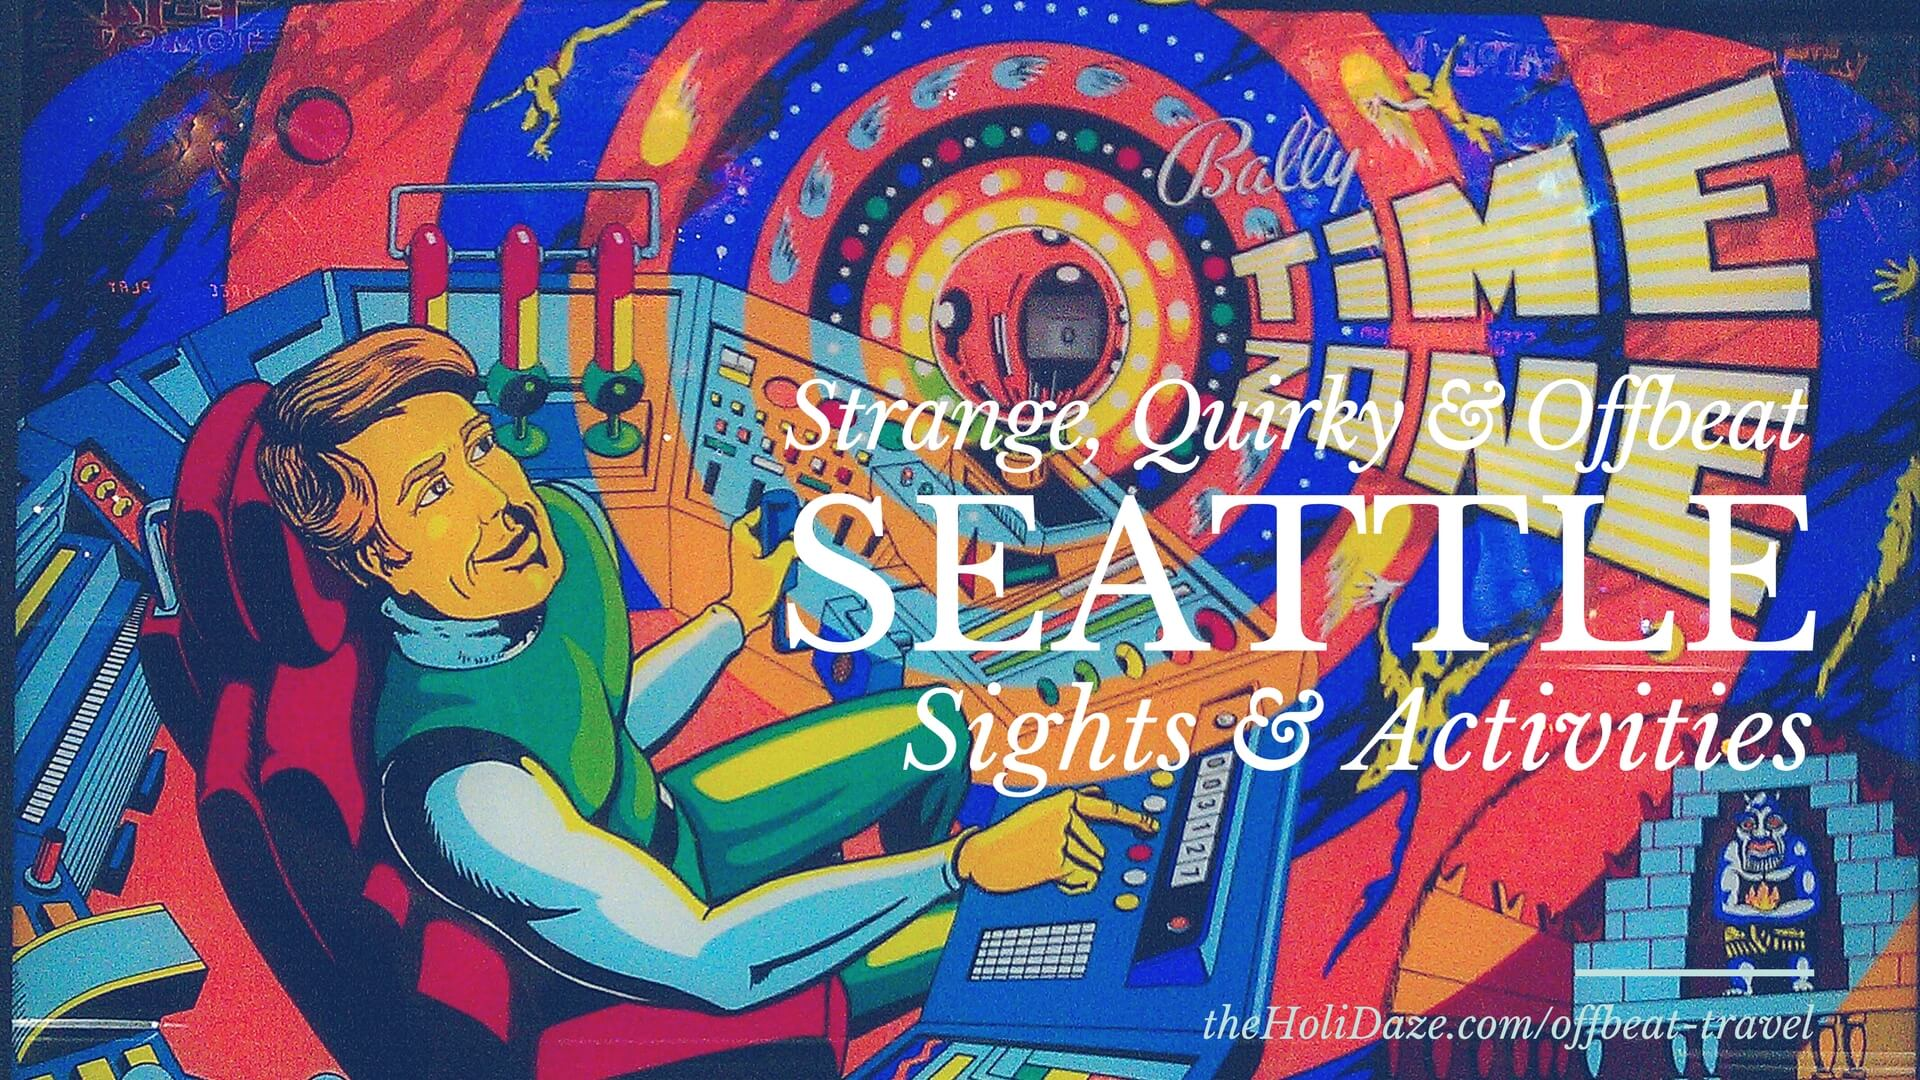 Offbeat Seattle Sights & Activities